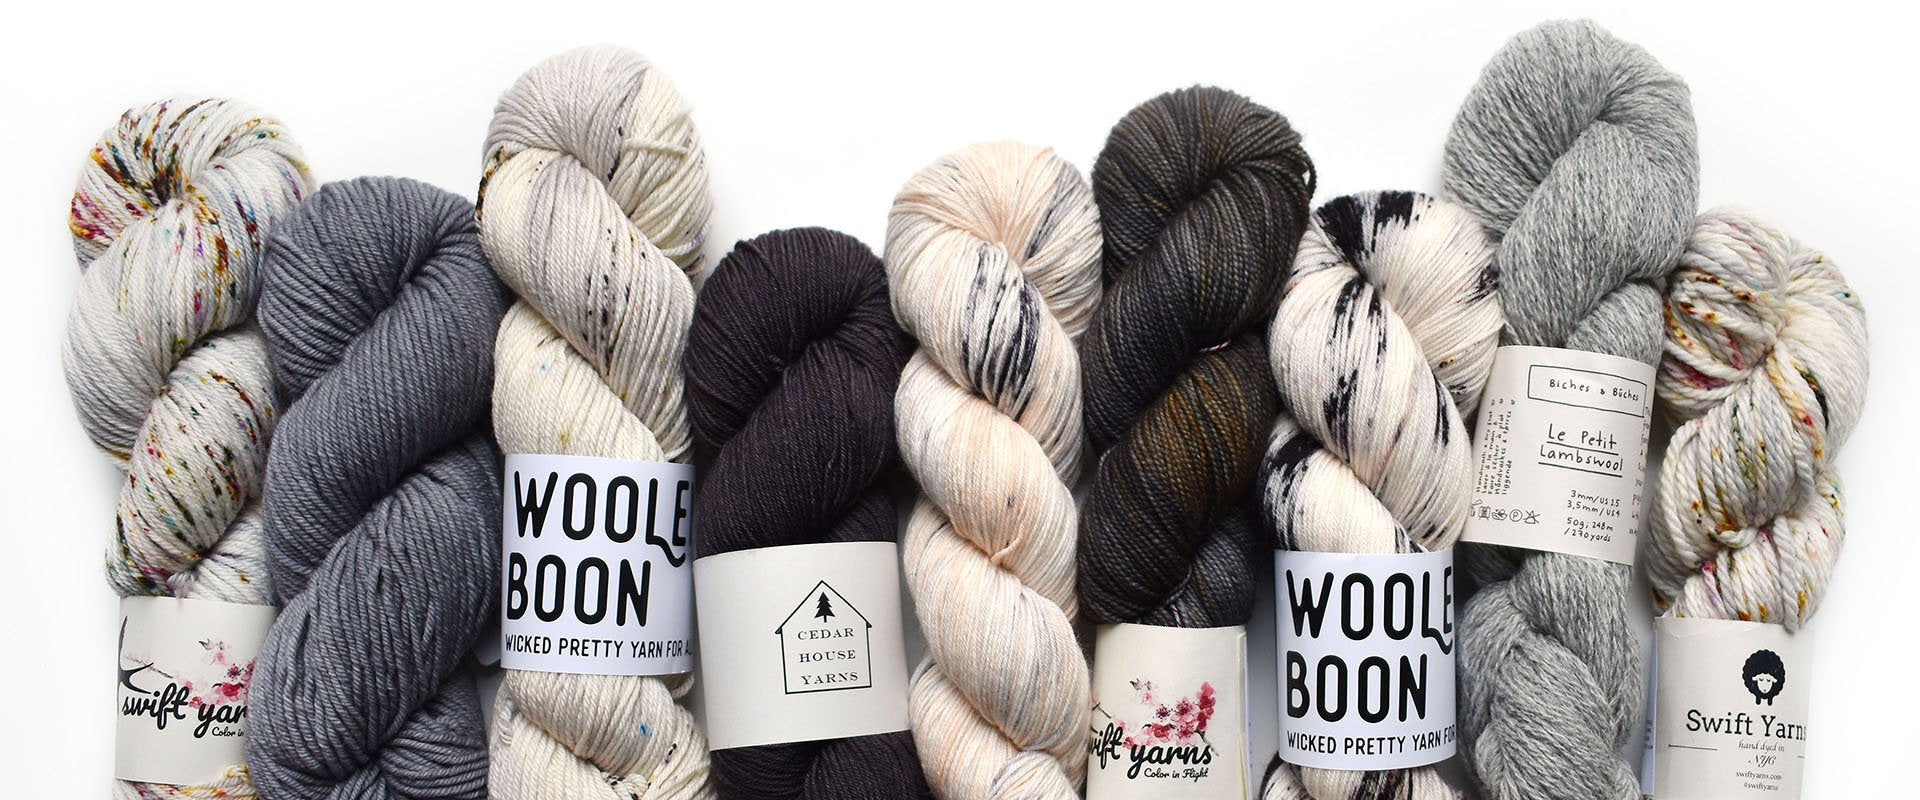 woolen boon yarn